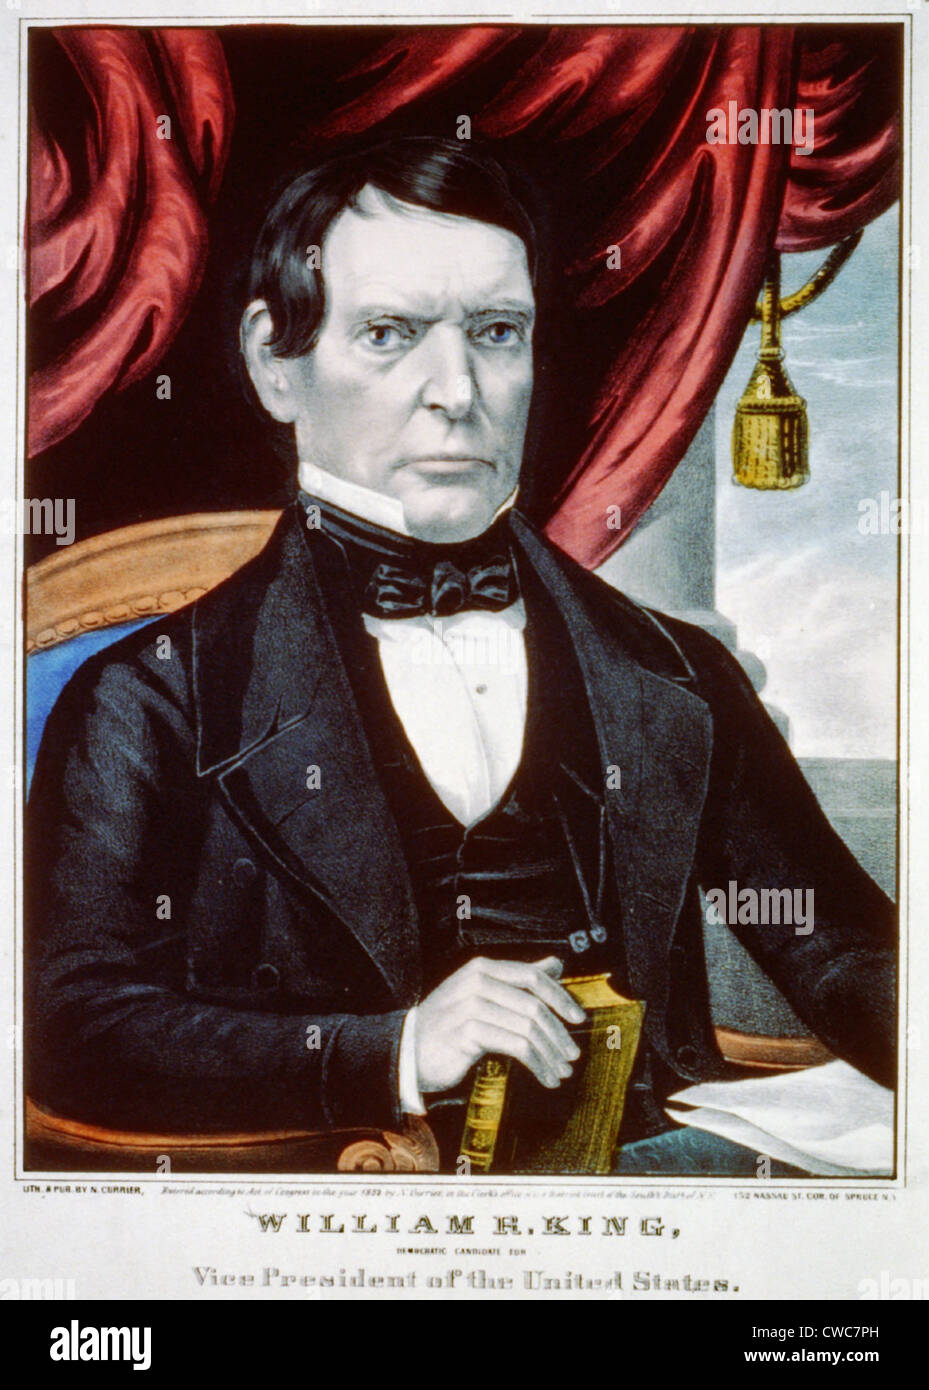 William R. King democratic candidate for Vice President of the United States 1852 - Stock Image